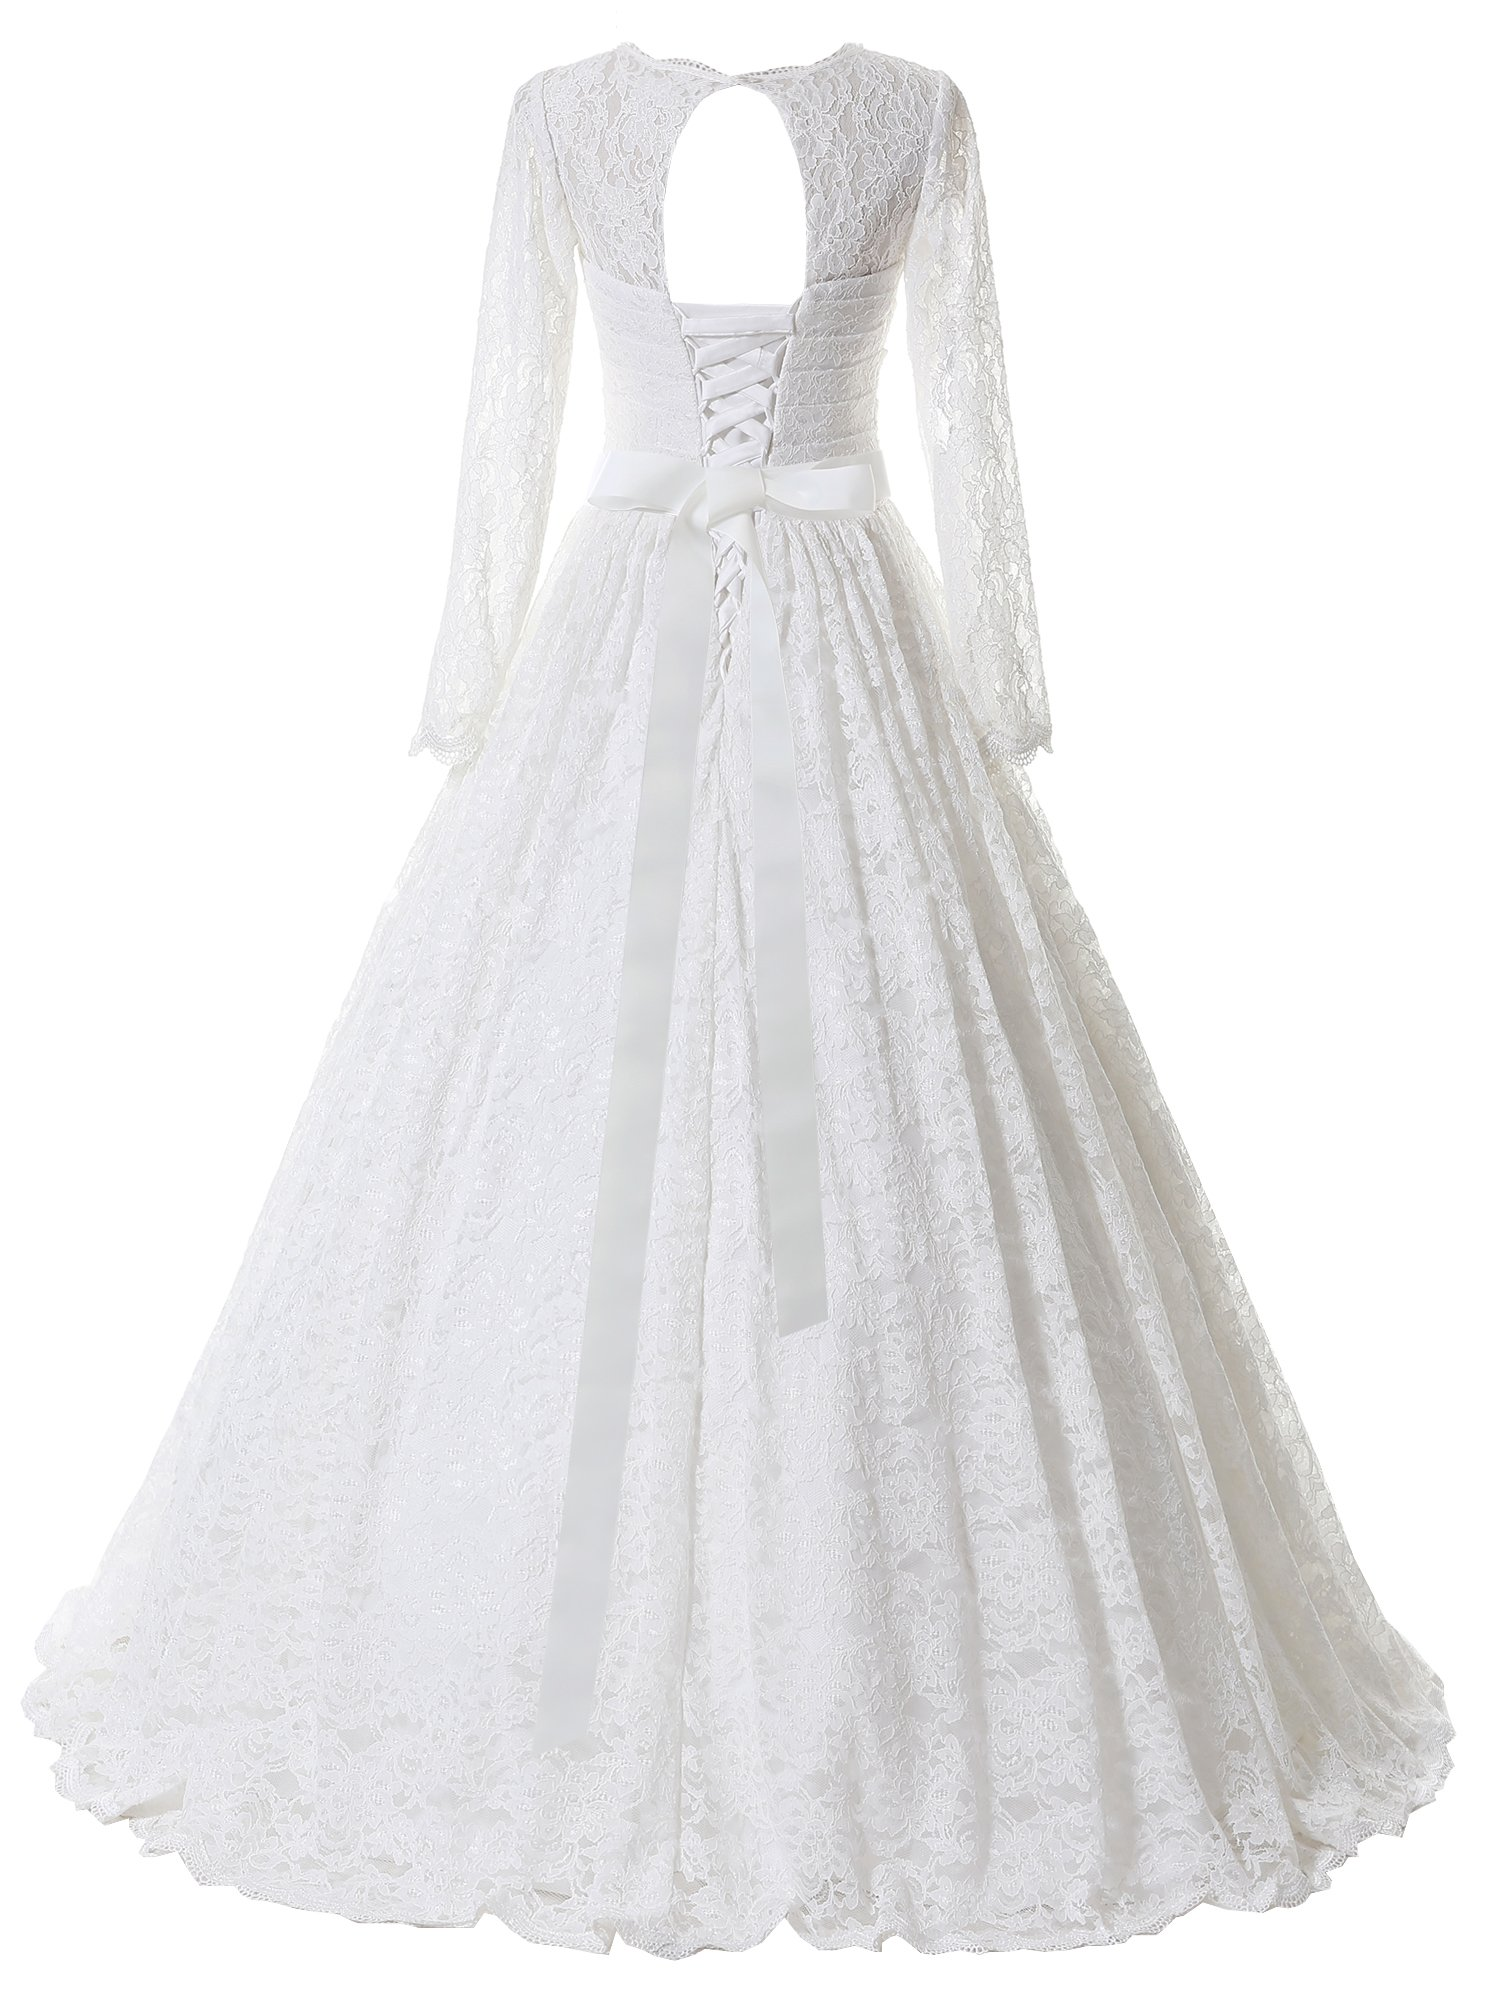 d80fd80c55515 Home/Bride Dresses/SOLOVEDRESS Women's Ball Gown Lace Princess Long Sleeves Wedding  Dress Sash Beaded Bridal Gown (US 20 Plus,White). ; 